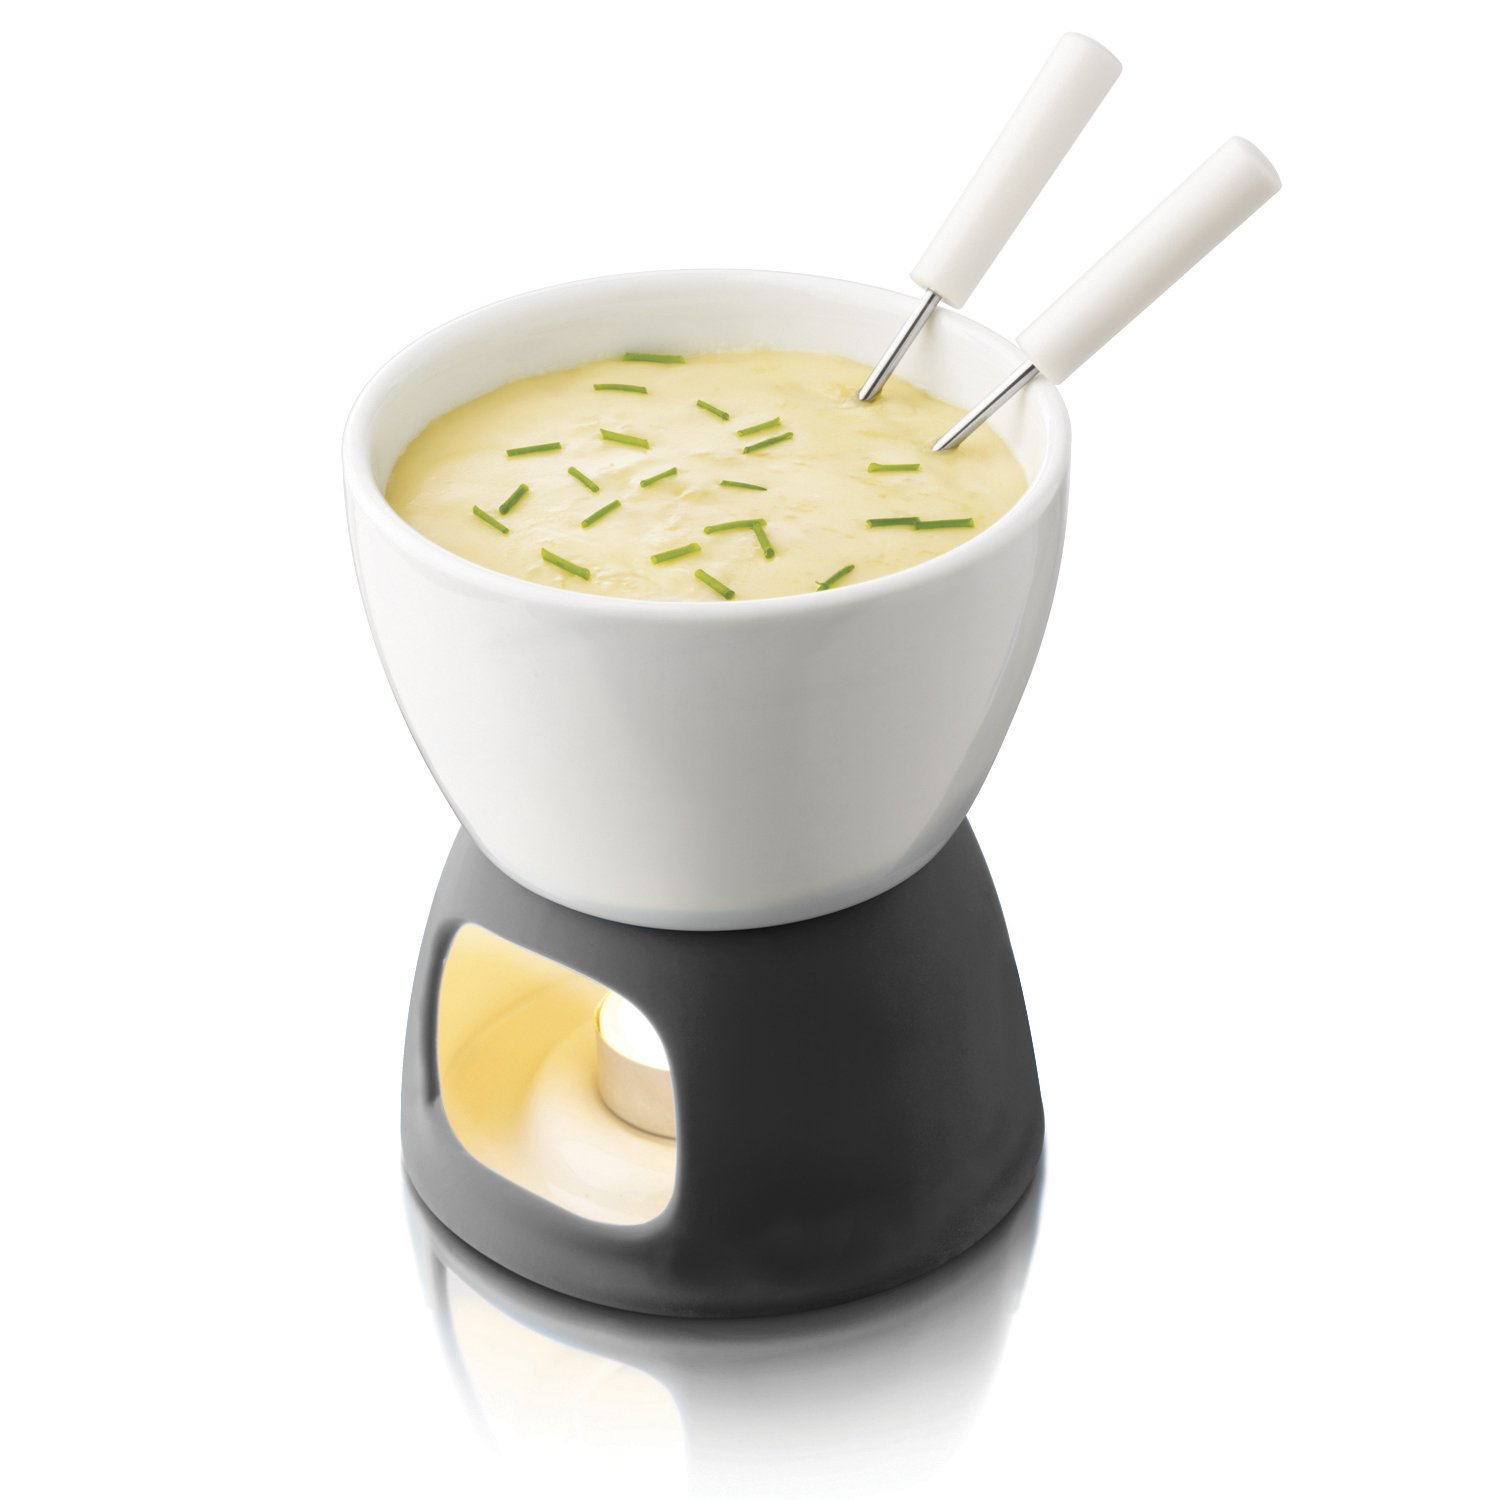 BOSKA Tea Light Tapas Fondue Set for Cheese or Chocolate, Explore Collection, White